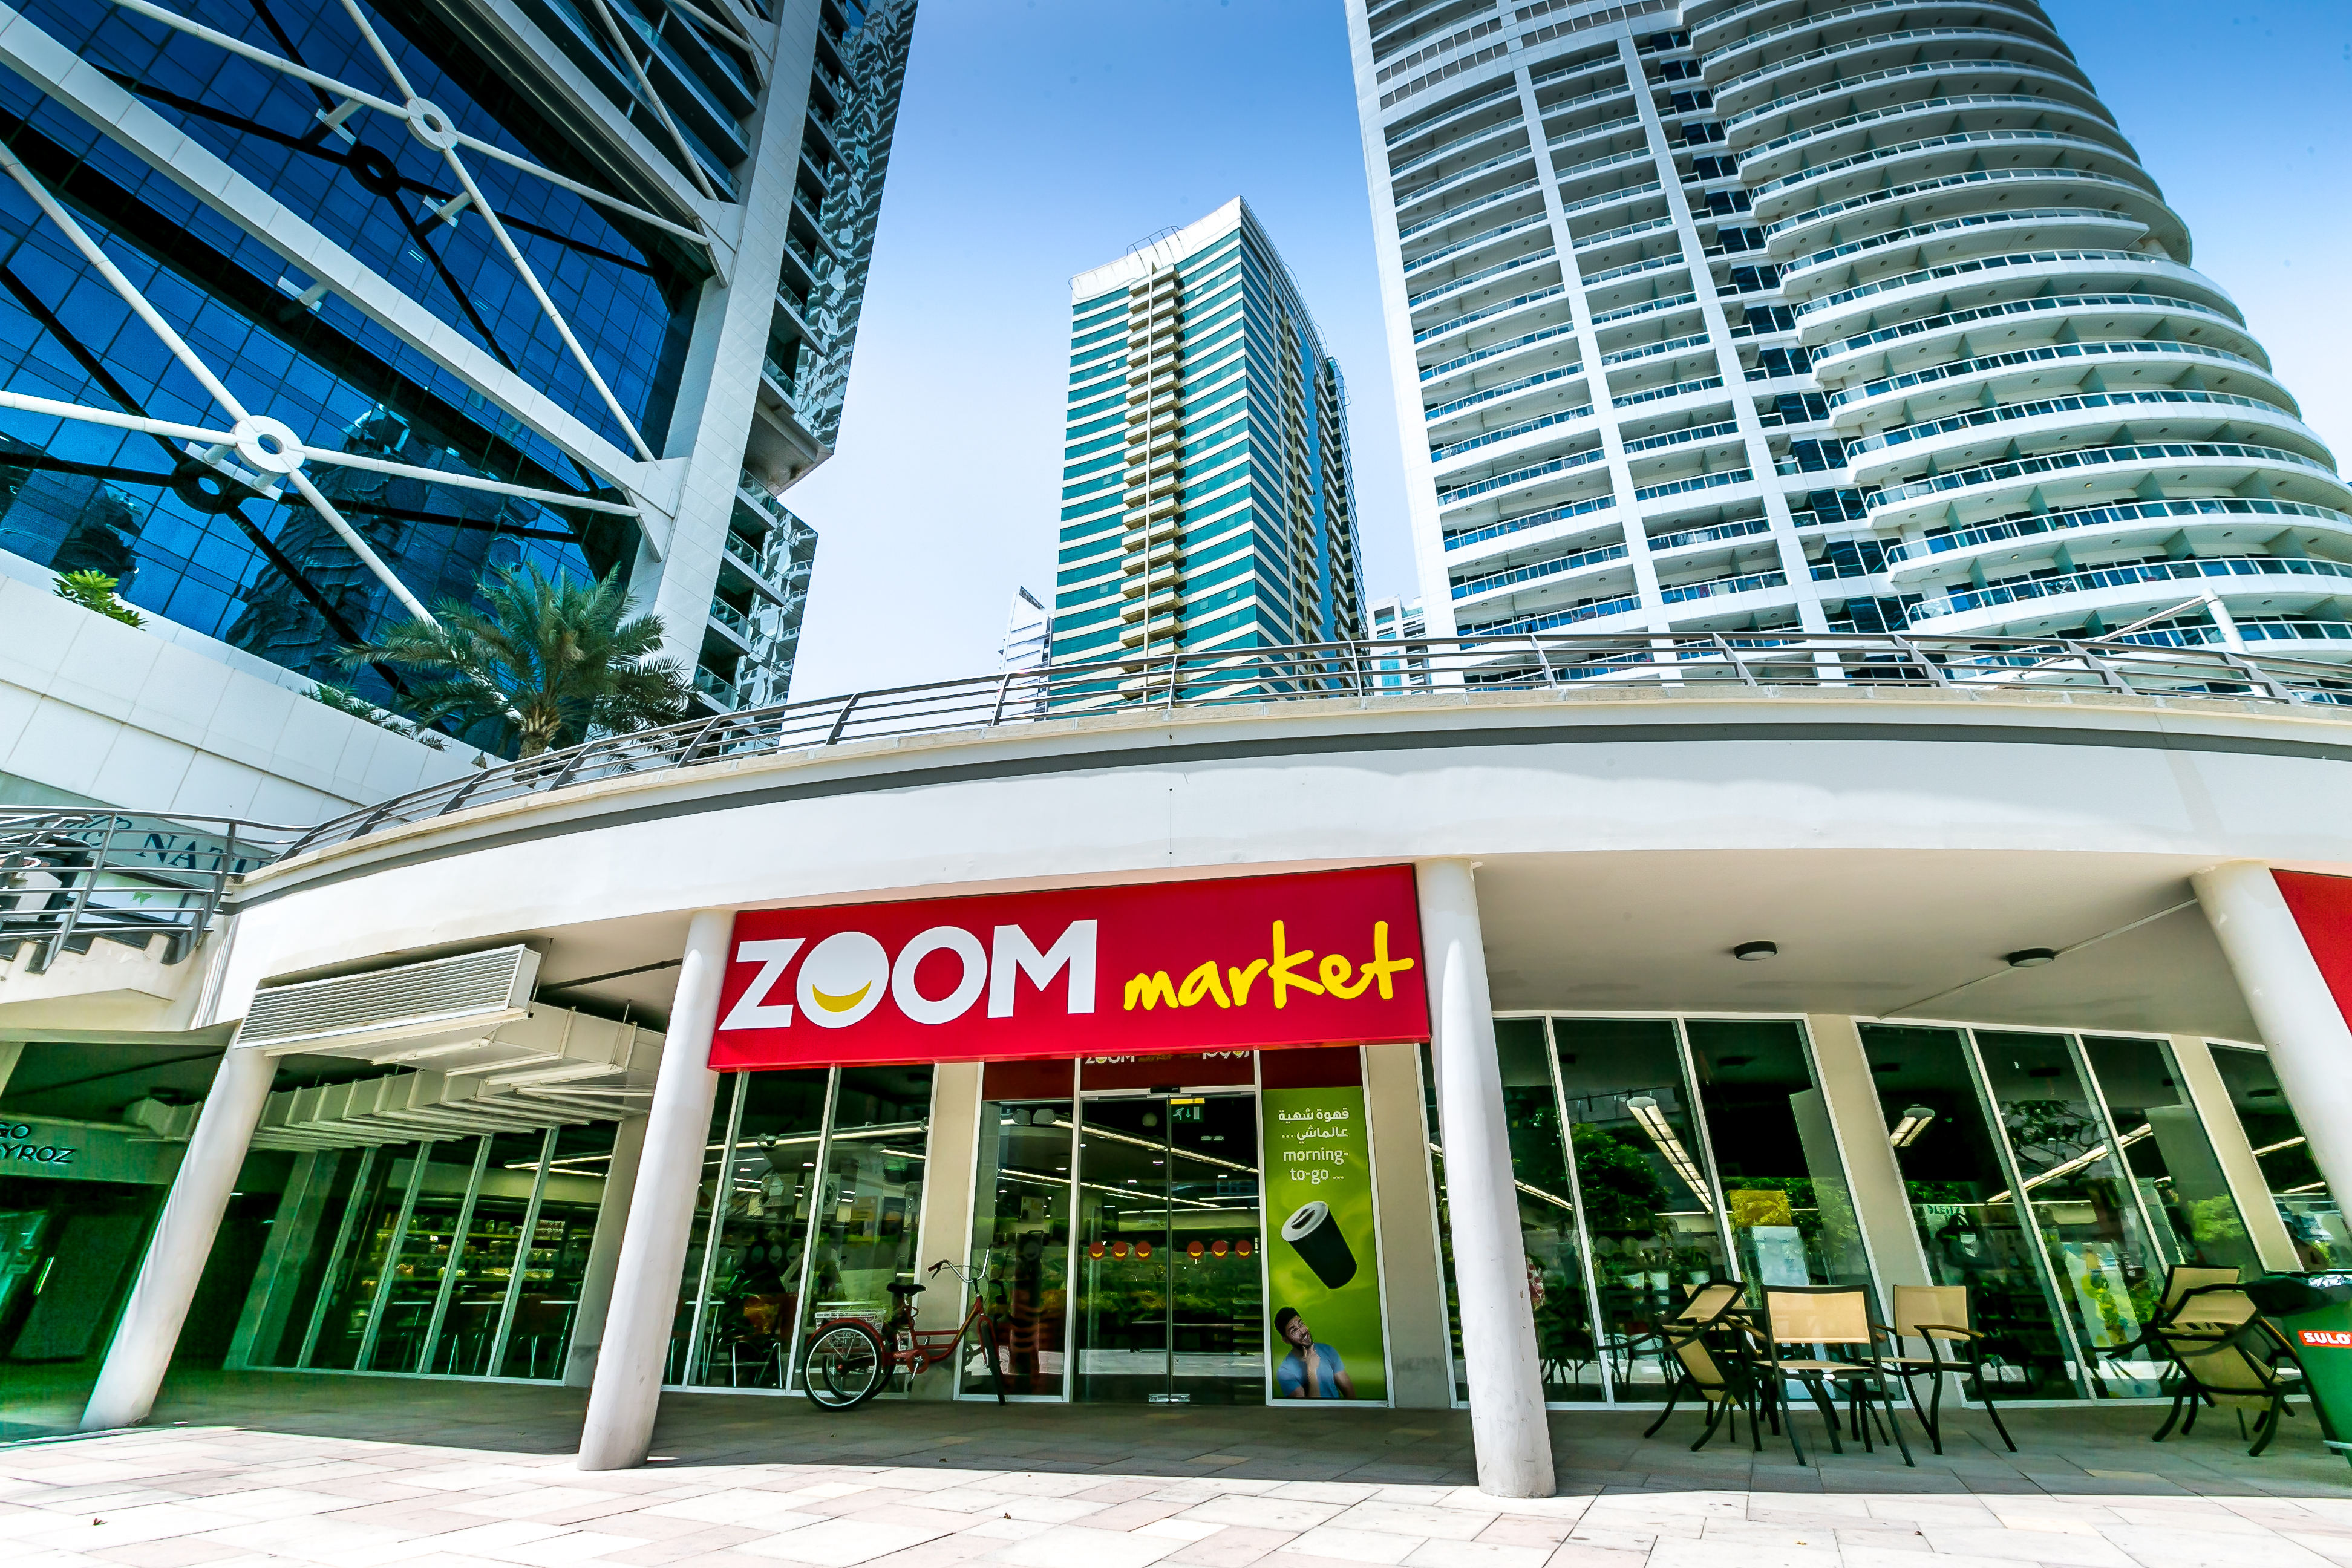 ZOOM stores plan 150 per cent growth in the UAE by 2025